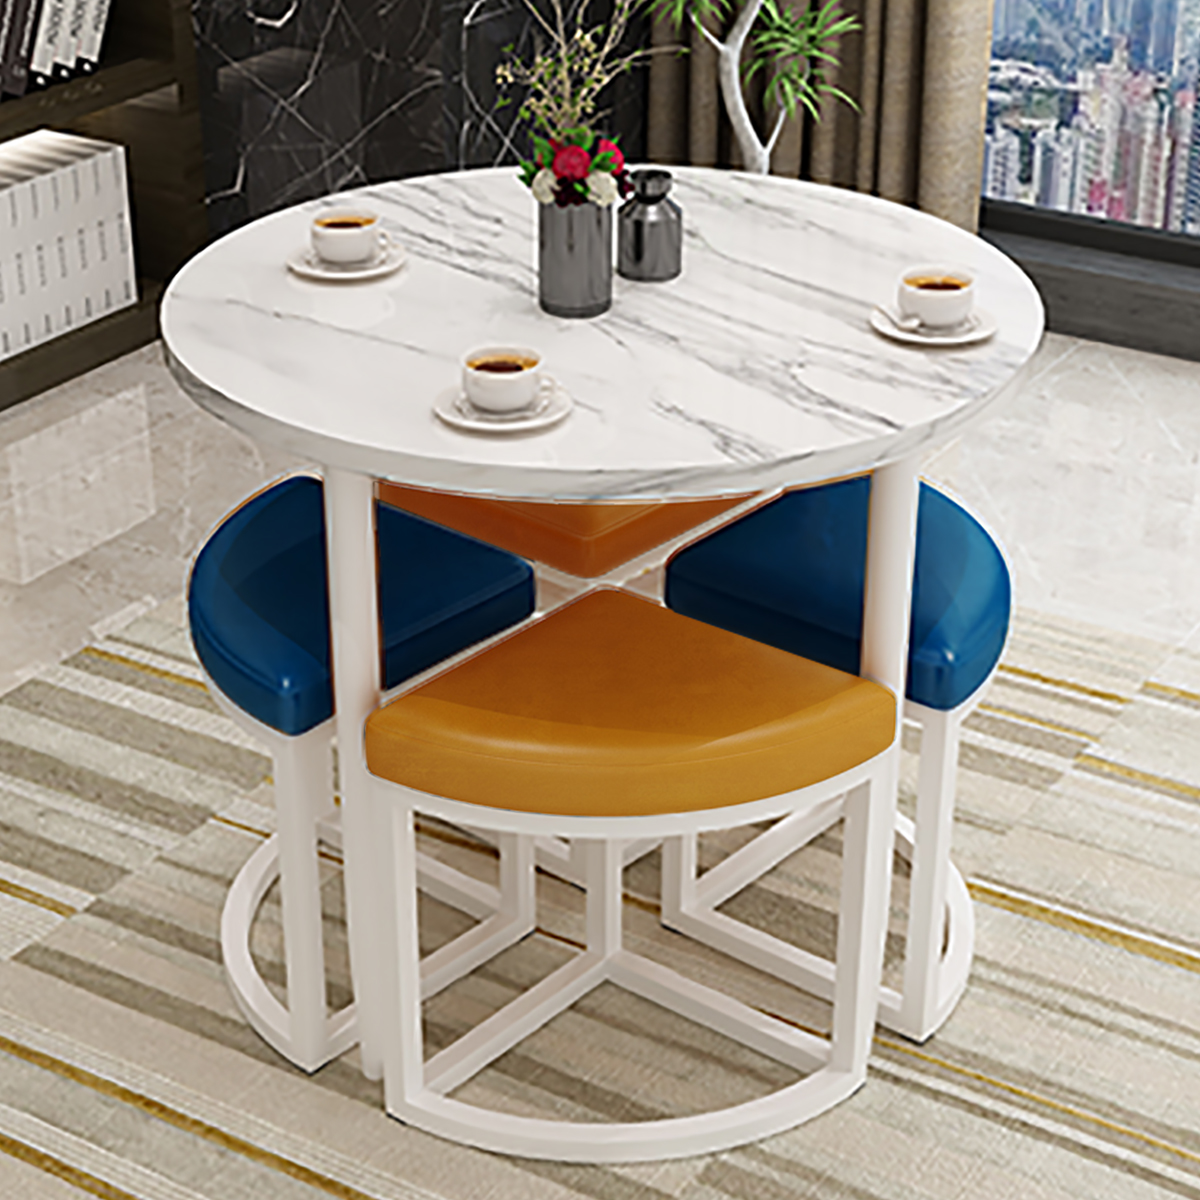 Reception and negotiation table and chair combination sales office one table and four chairs milk tea shop leisure reception reception small round table